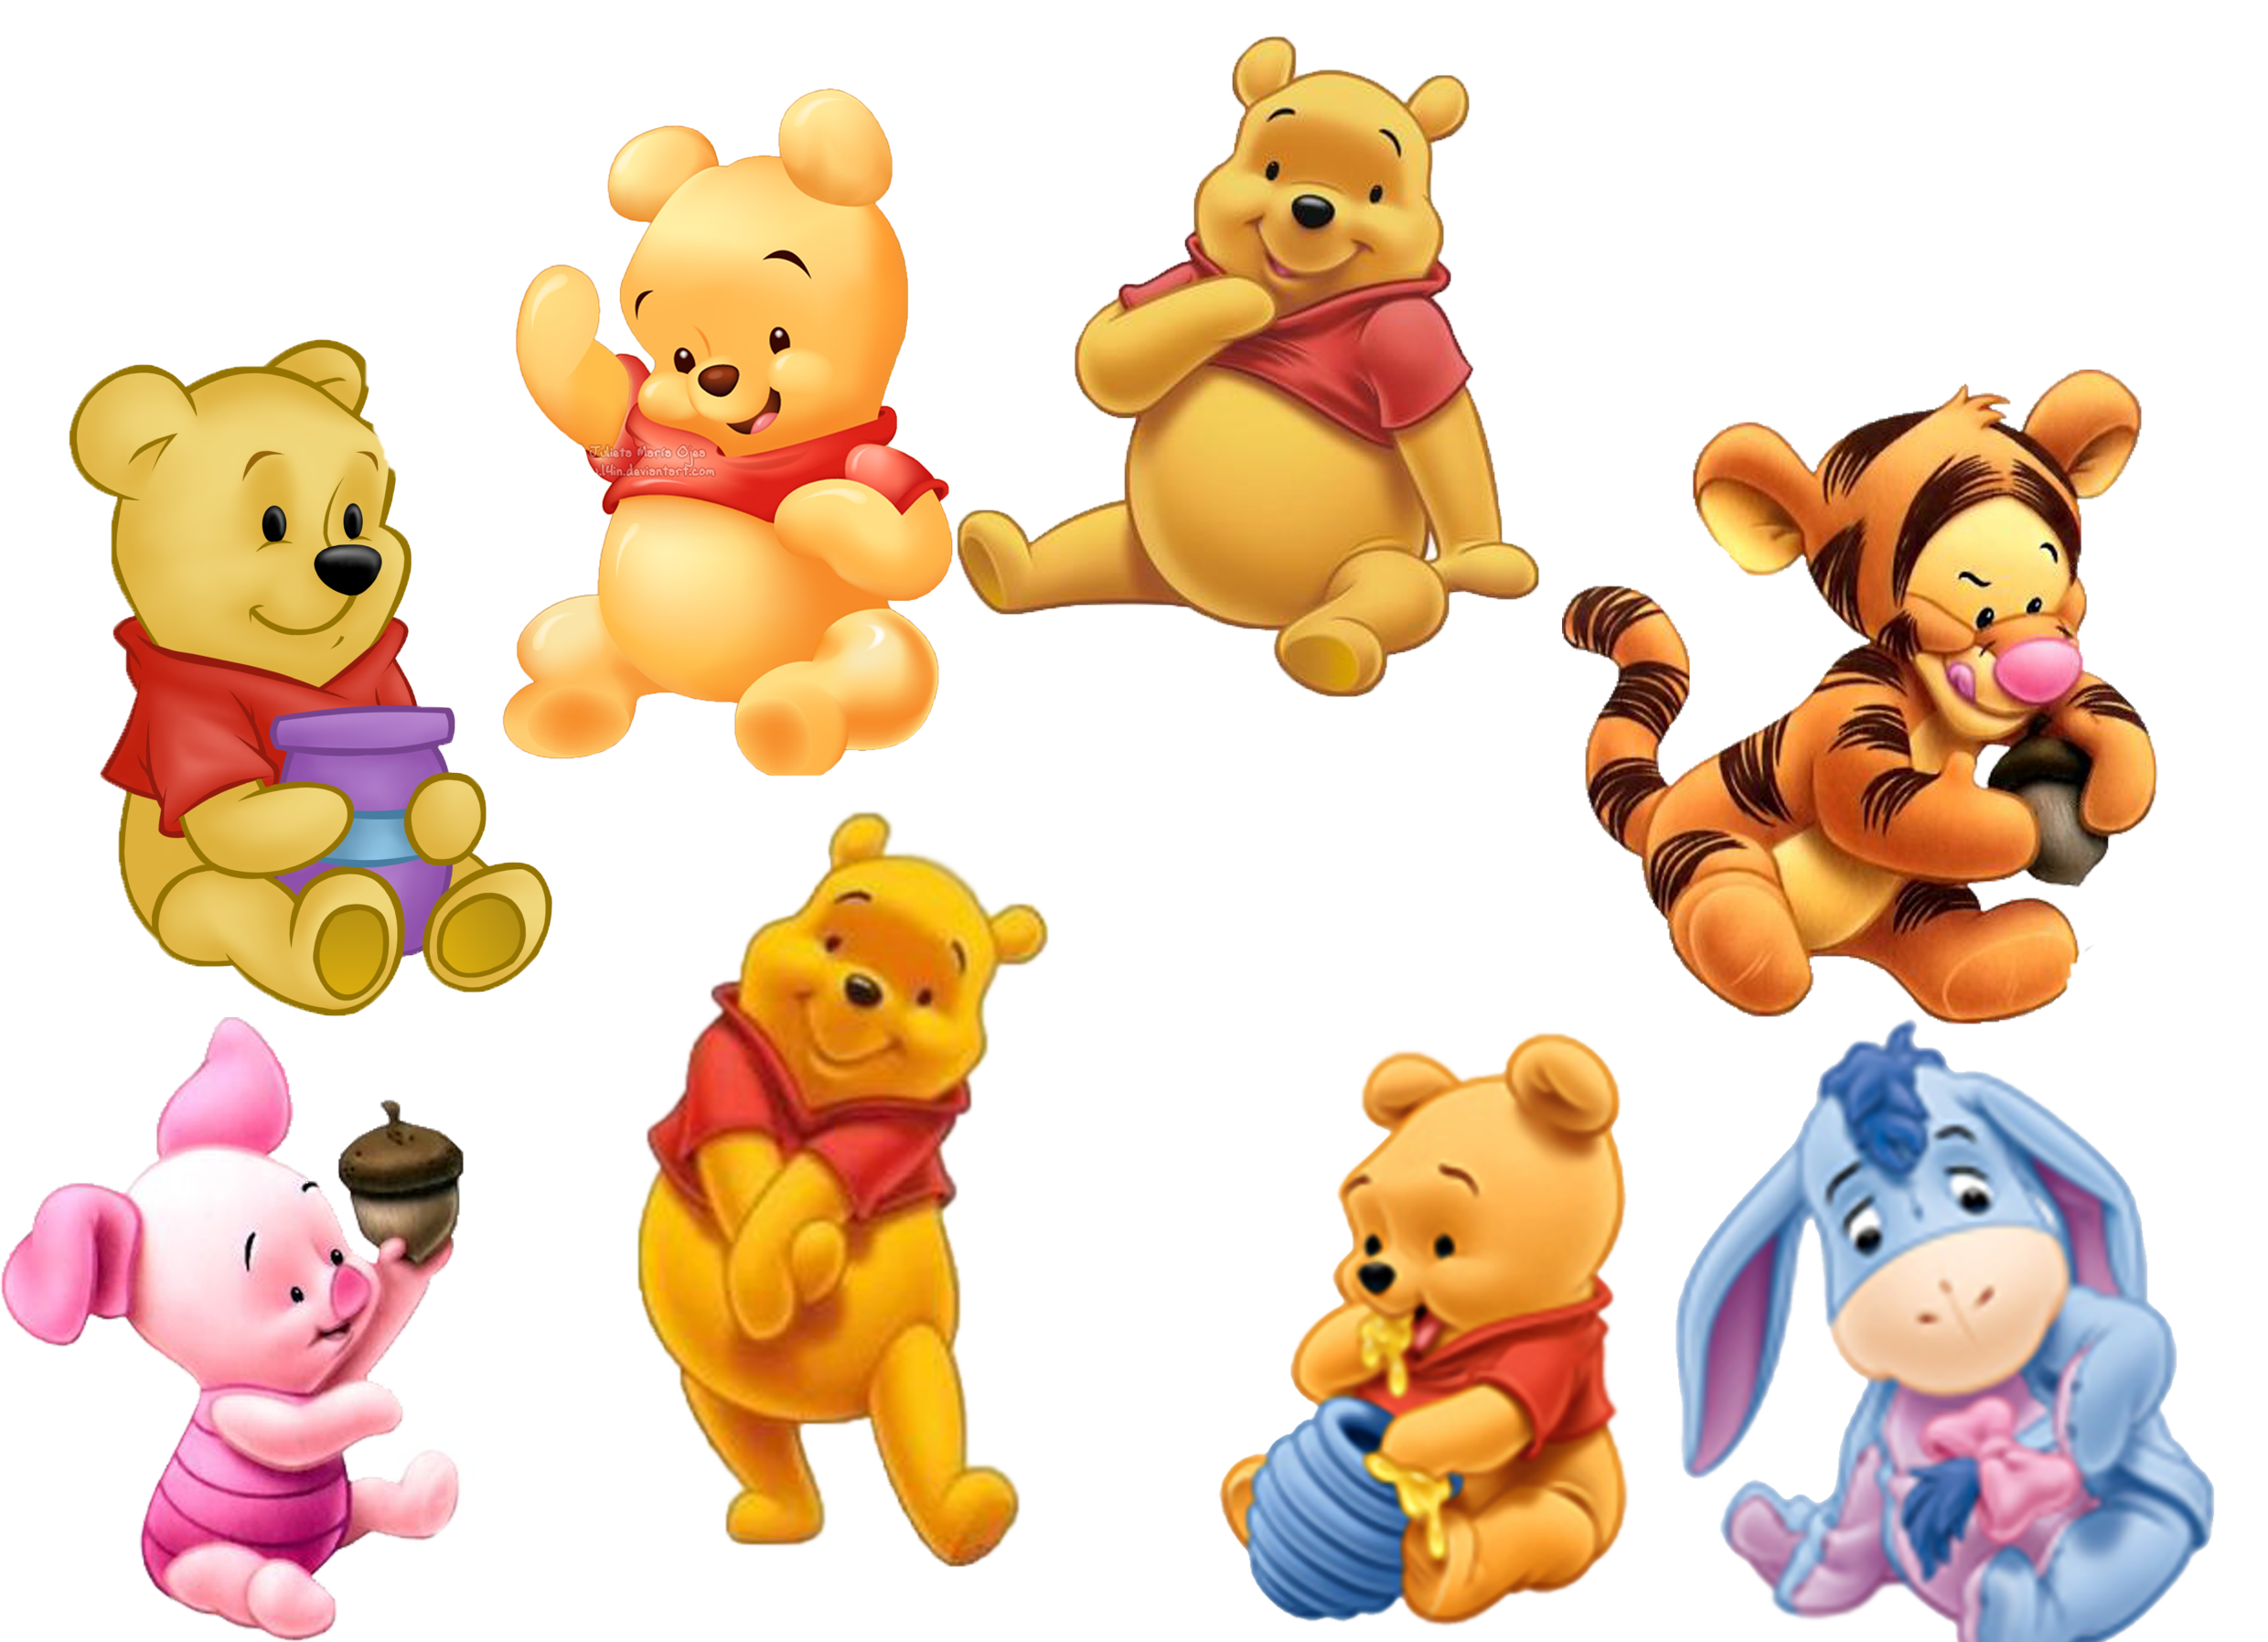 Book corner clipart picture stock Winnie The Pooh All PNG Image - PurePNG | Free transparent CC0 PNG ... picture stock